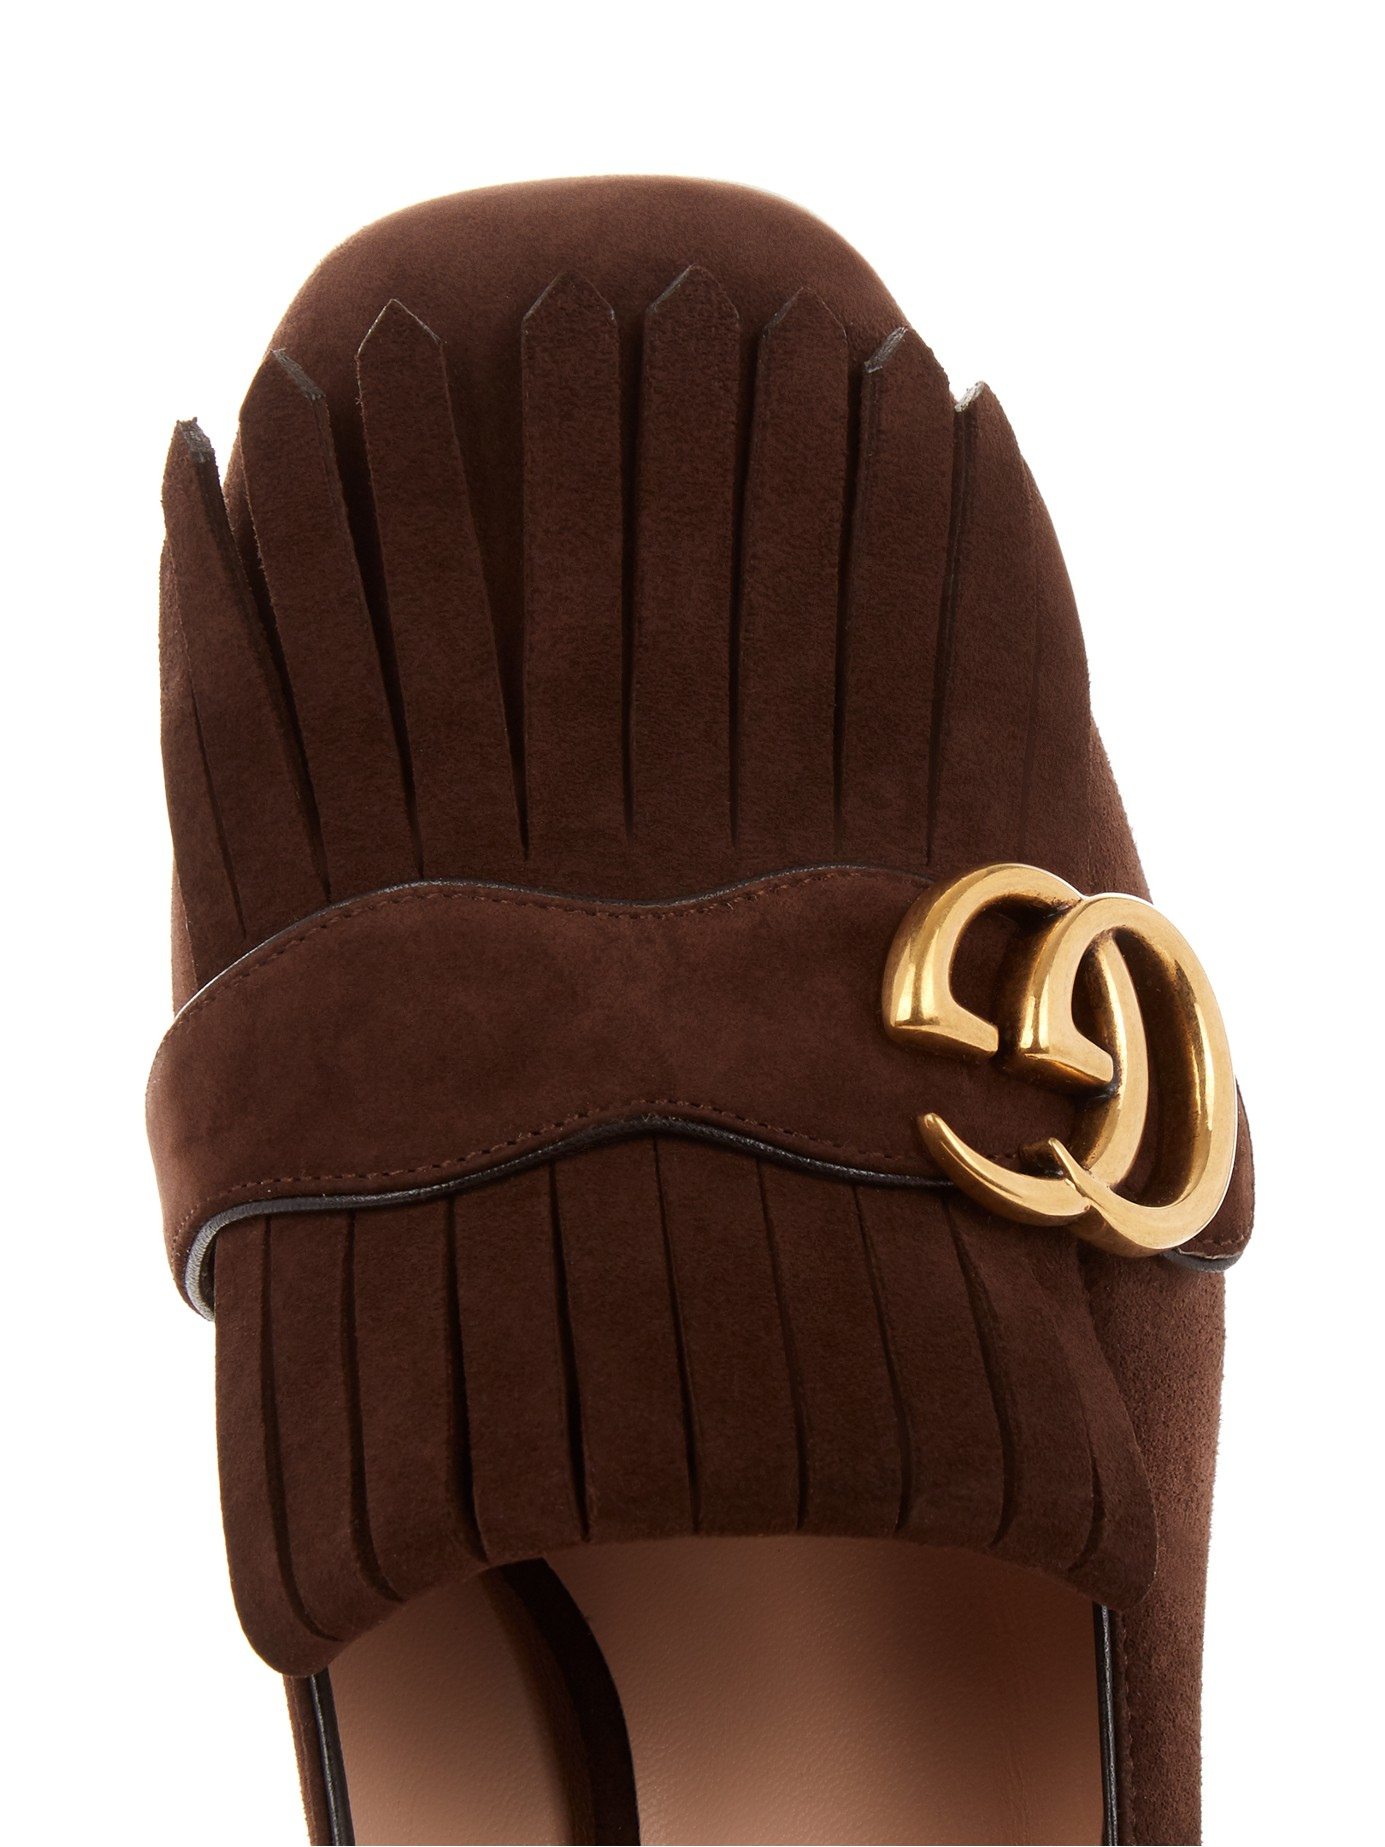 798fb5694a6 Gucci Marmont Fringed Suede Loafers in Brown - Lyst